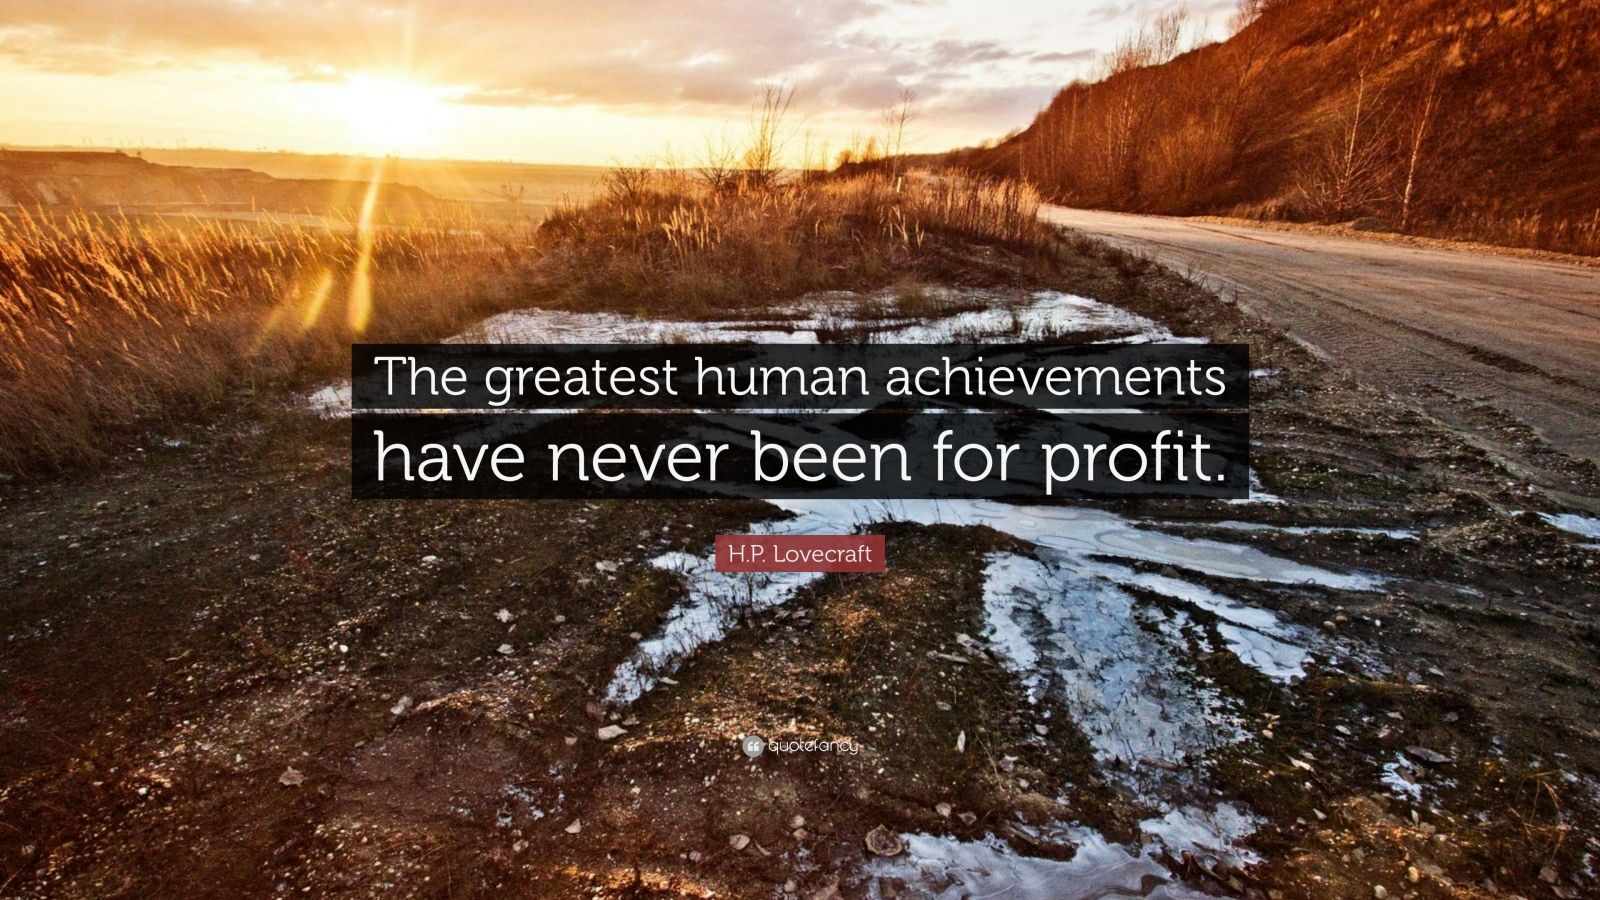 """H.P. Lovecraft Quote: """"The greatest human achievements have never been for profit."""""""